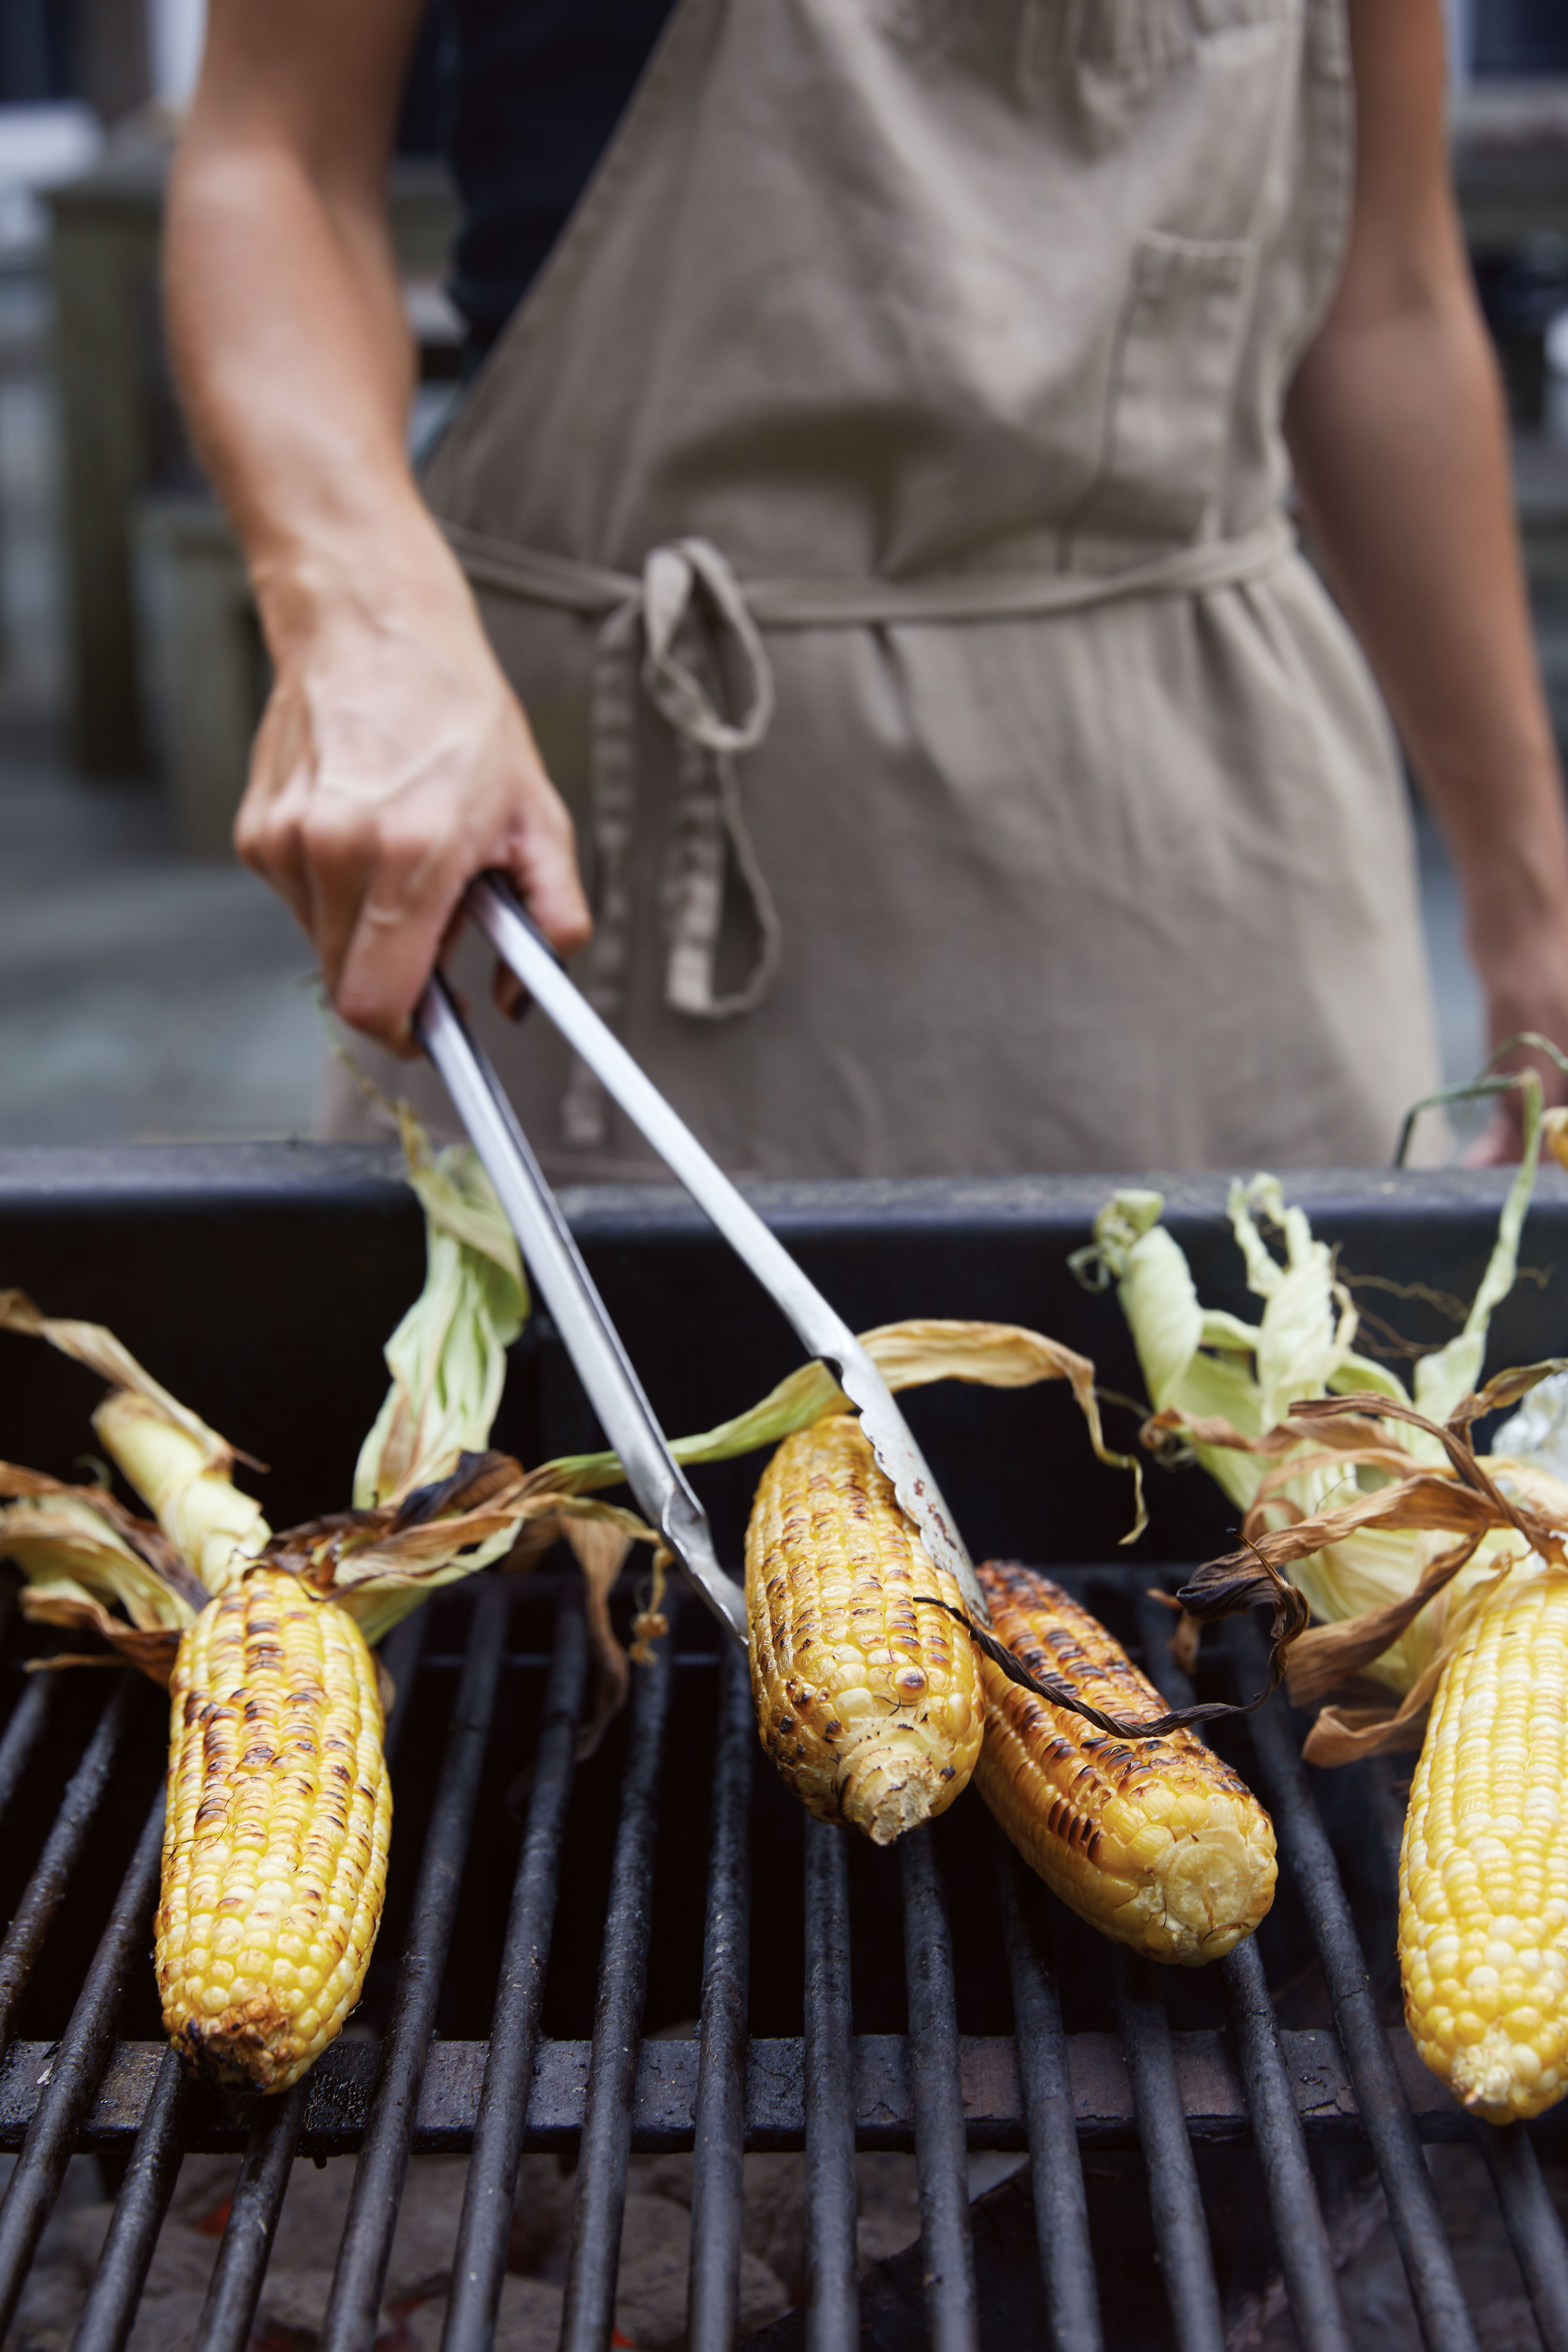 The Five Golden Rules of Grilling